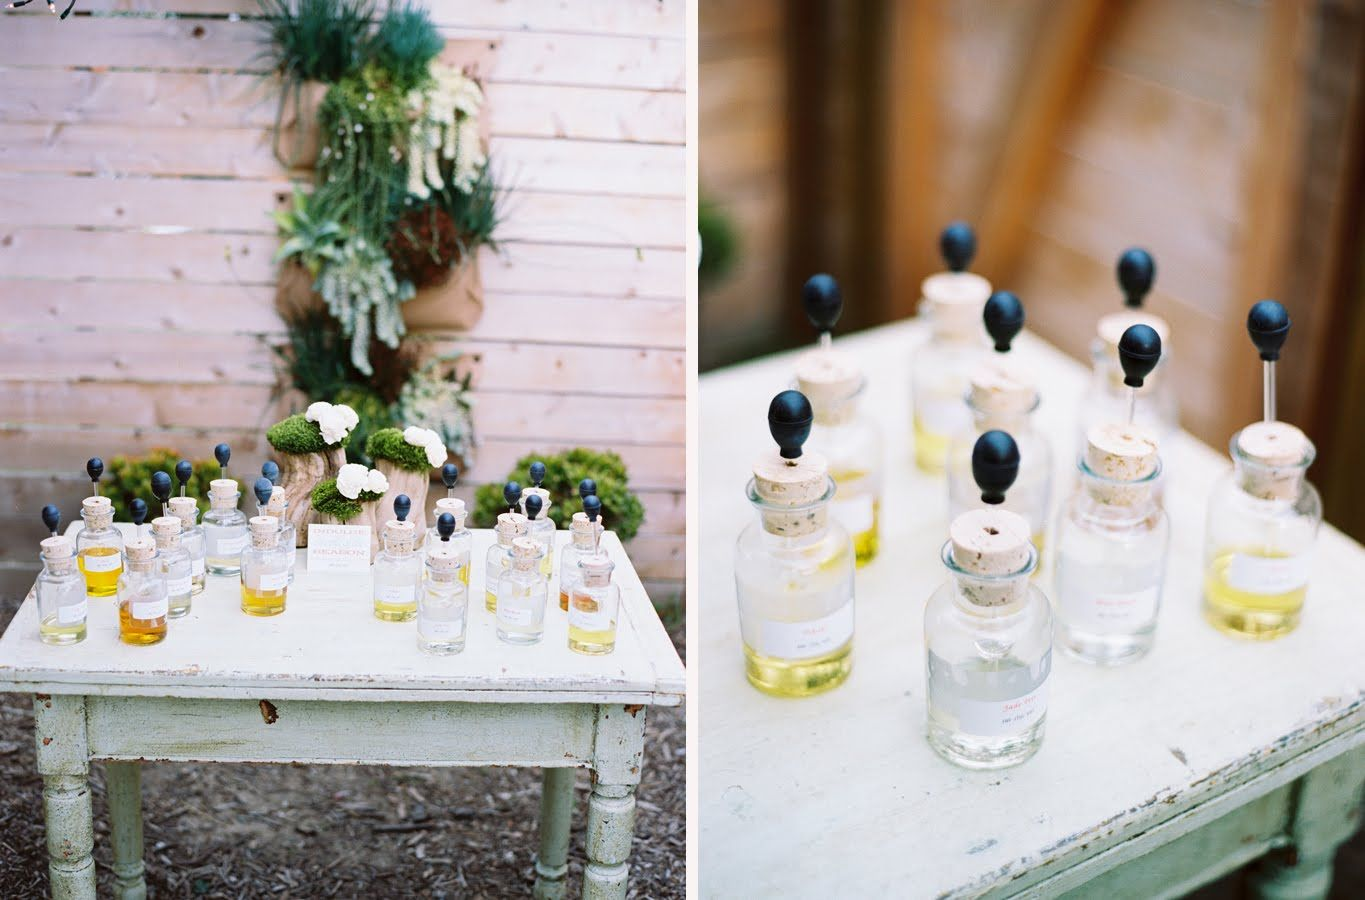 Make Your Own Perfume Bar // Design By JL Designs